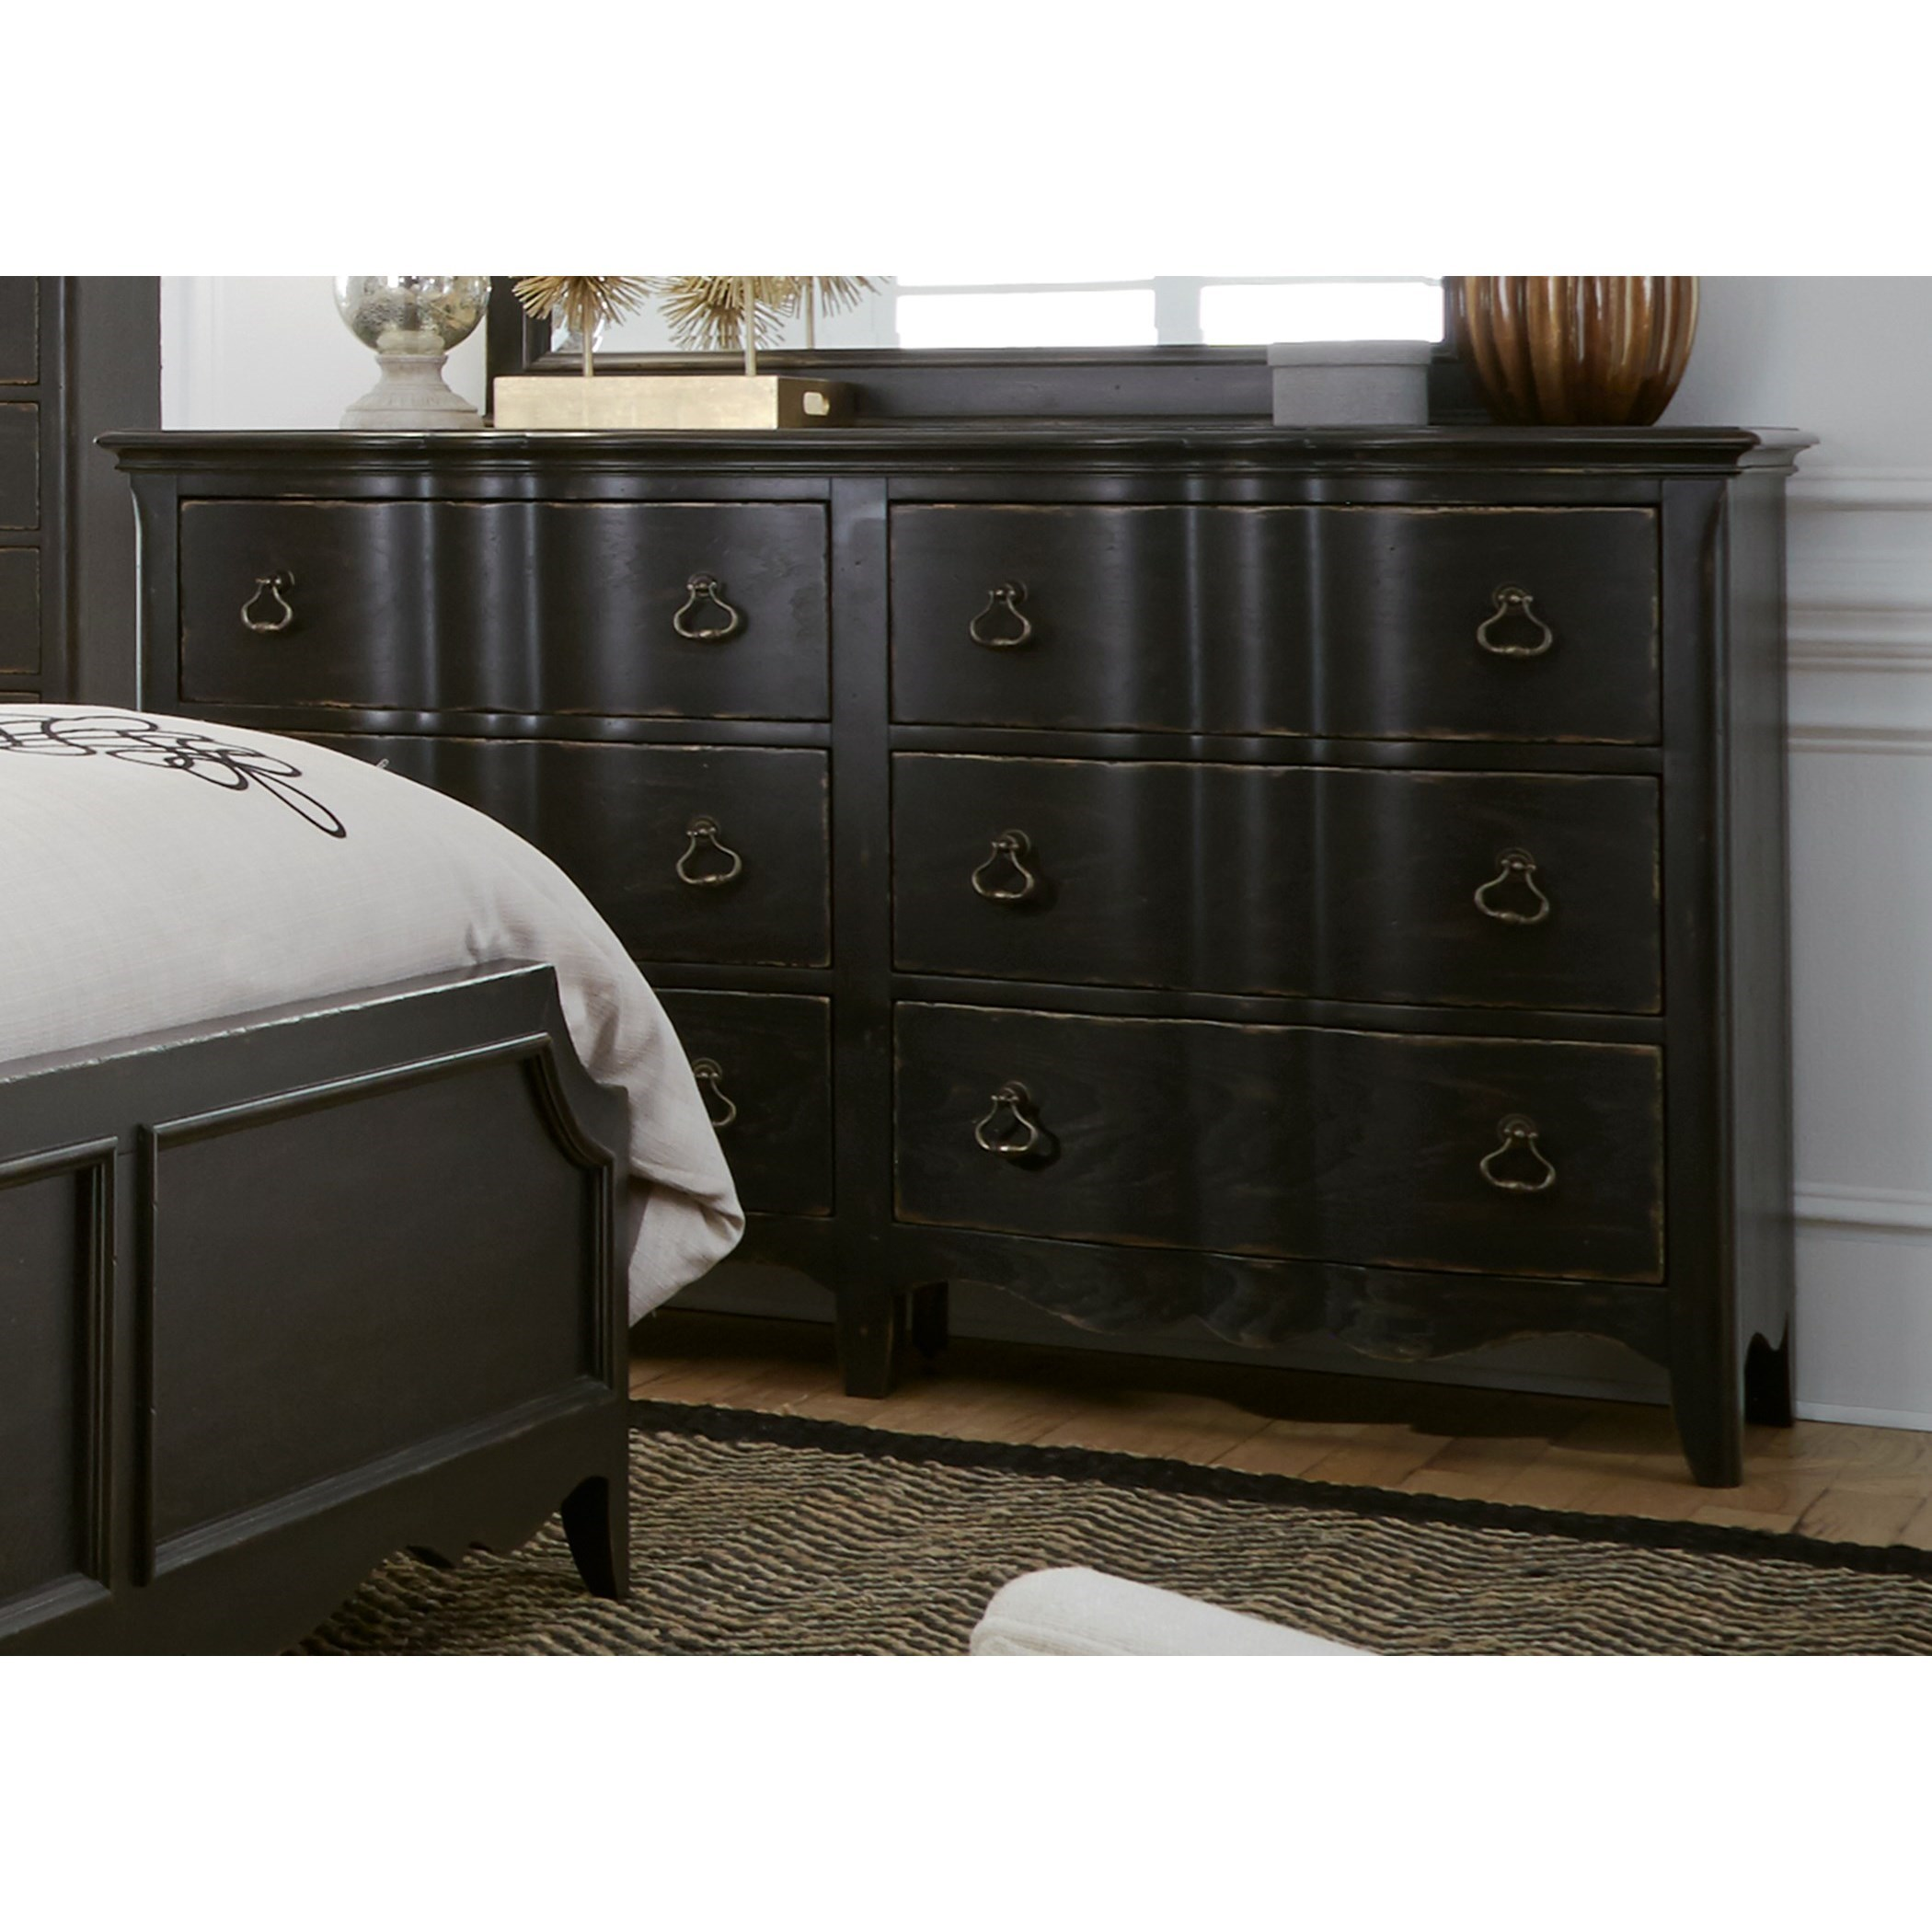 Chesapeake 6-Drawer Dresser by Liberty Furniture at Northeast Factory Direct